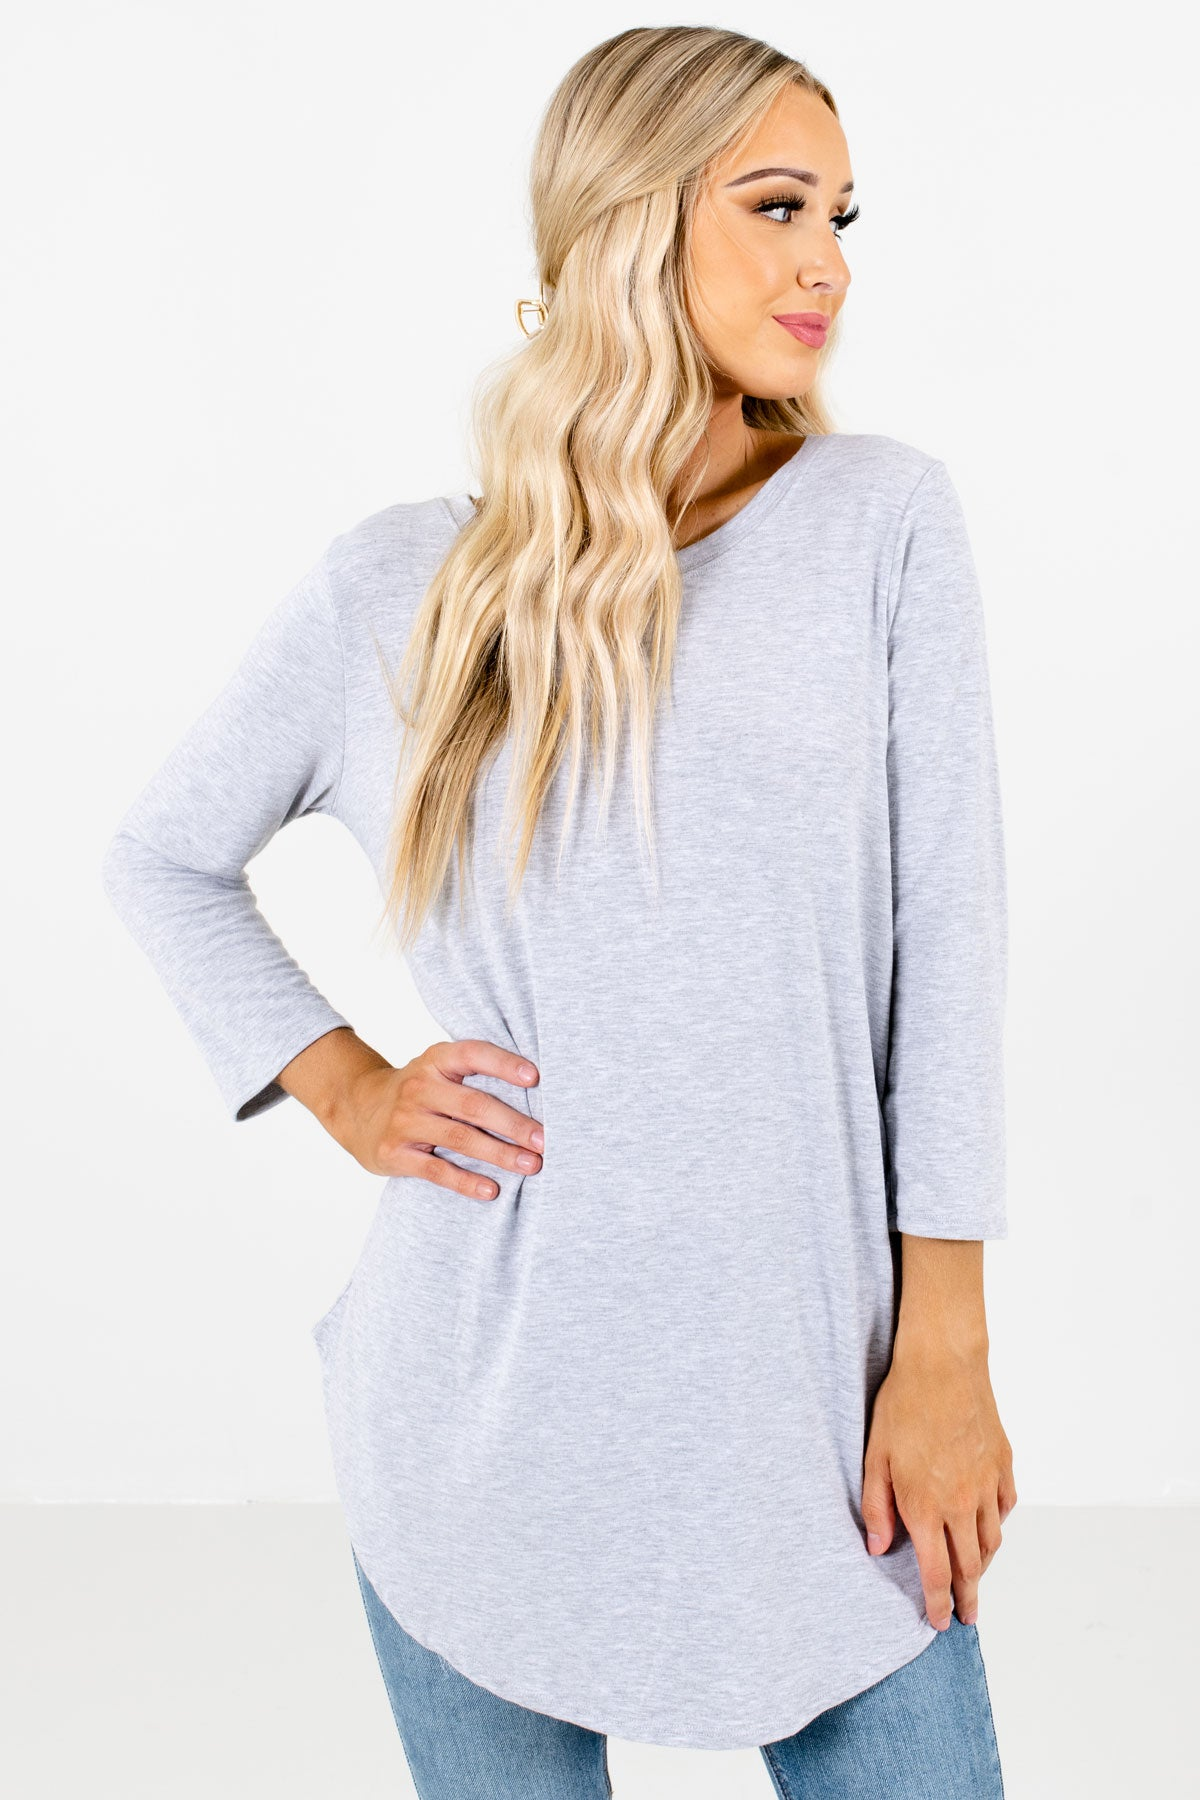 Heather Gray ¾ Length Sleeve Boutique Tops for Women